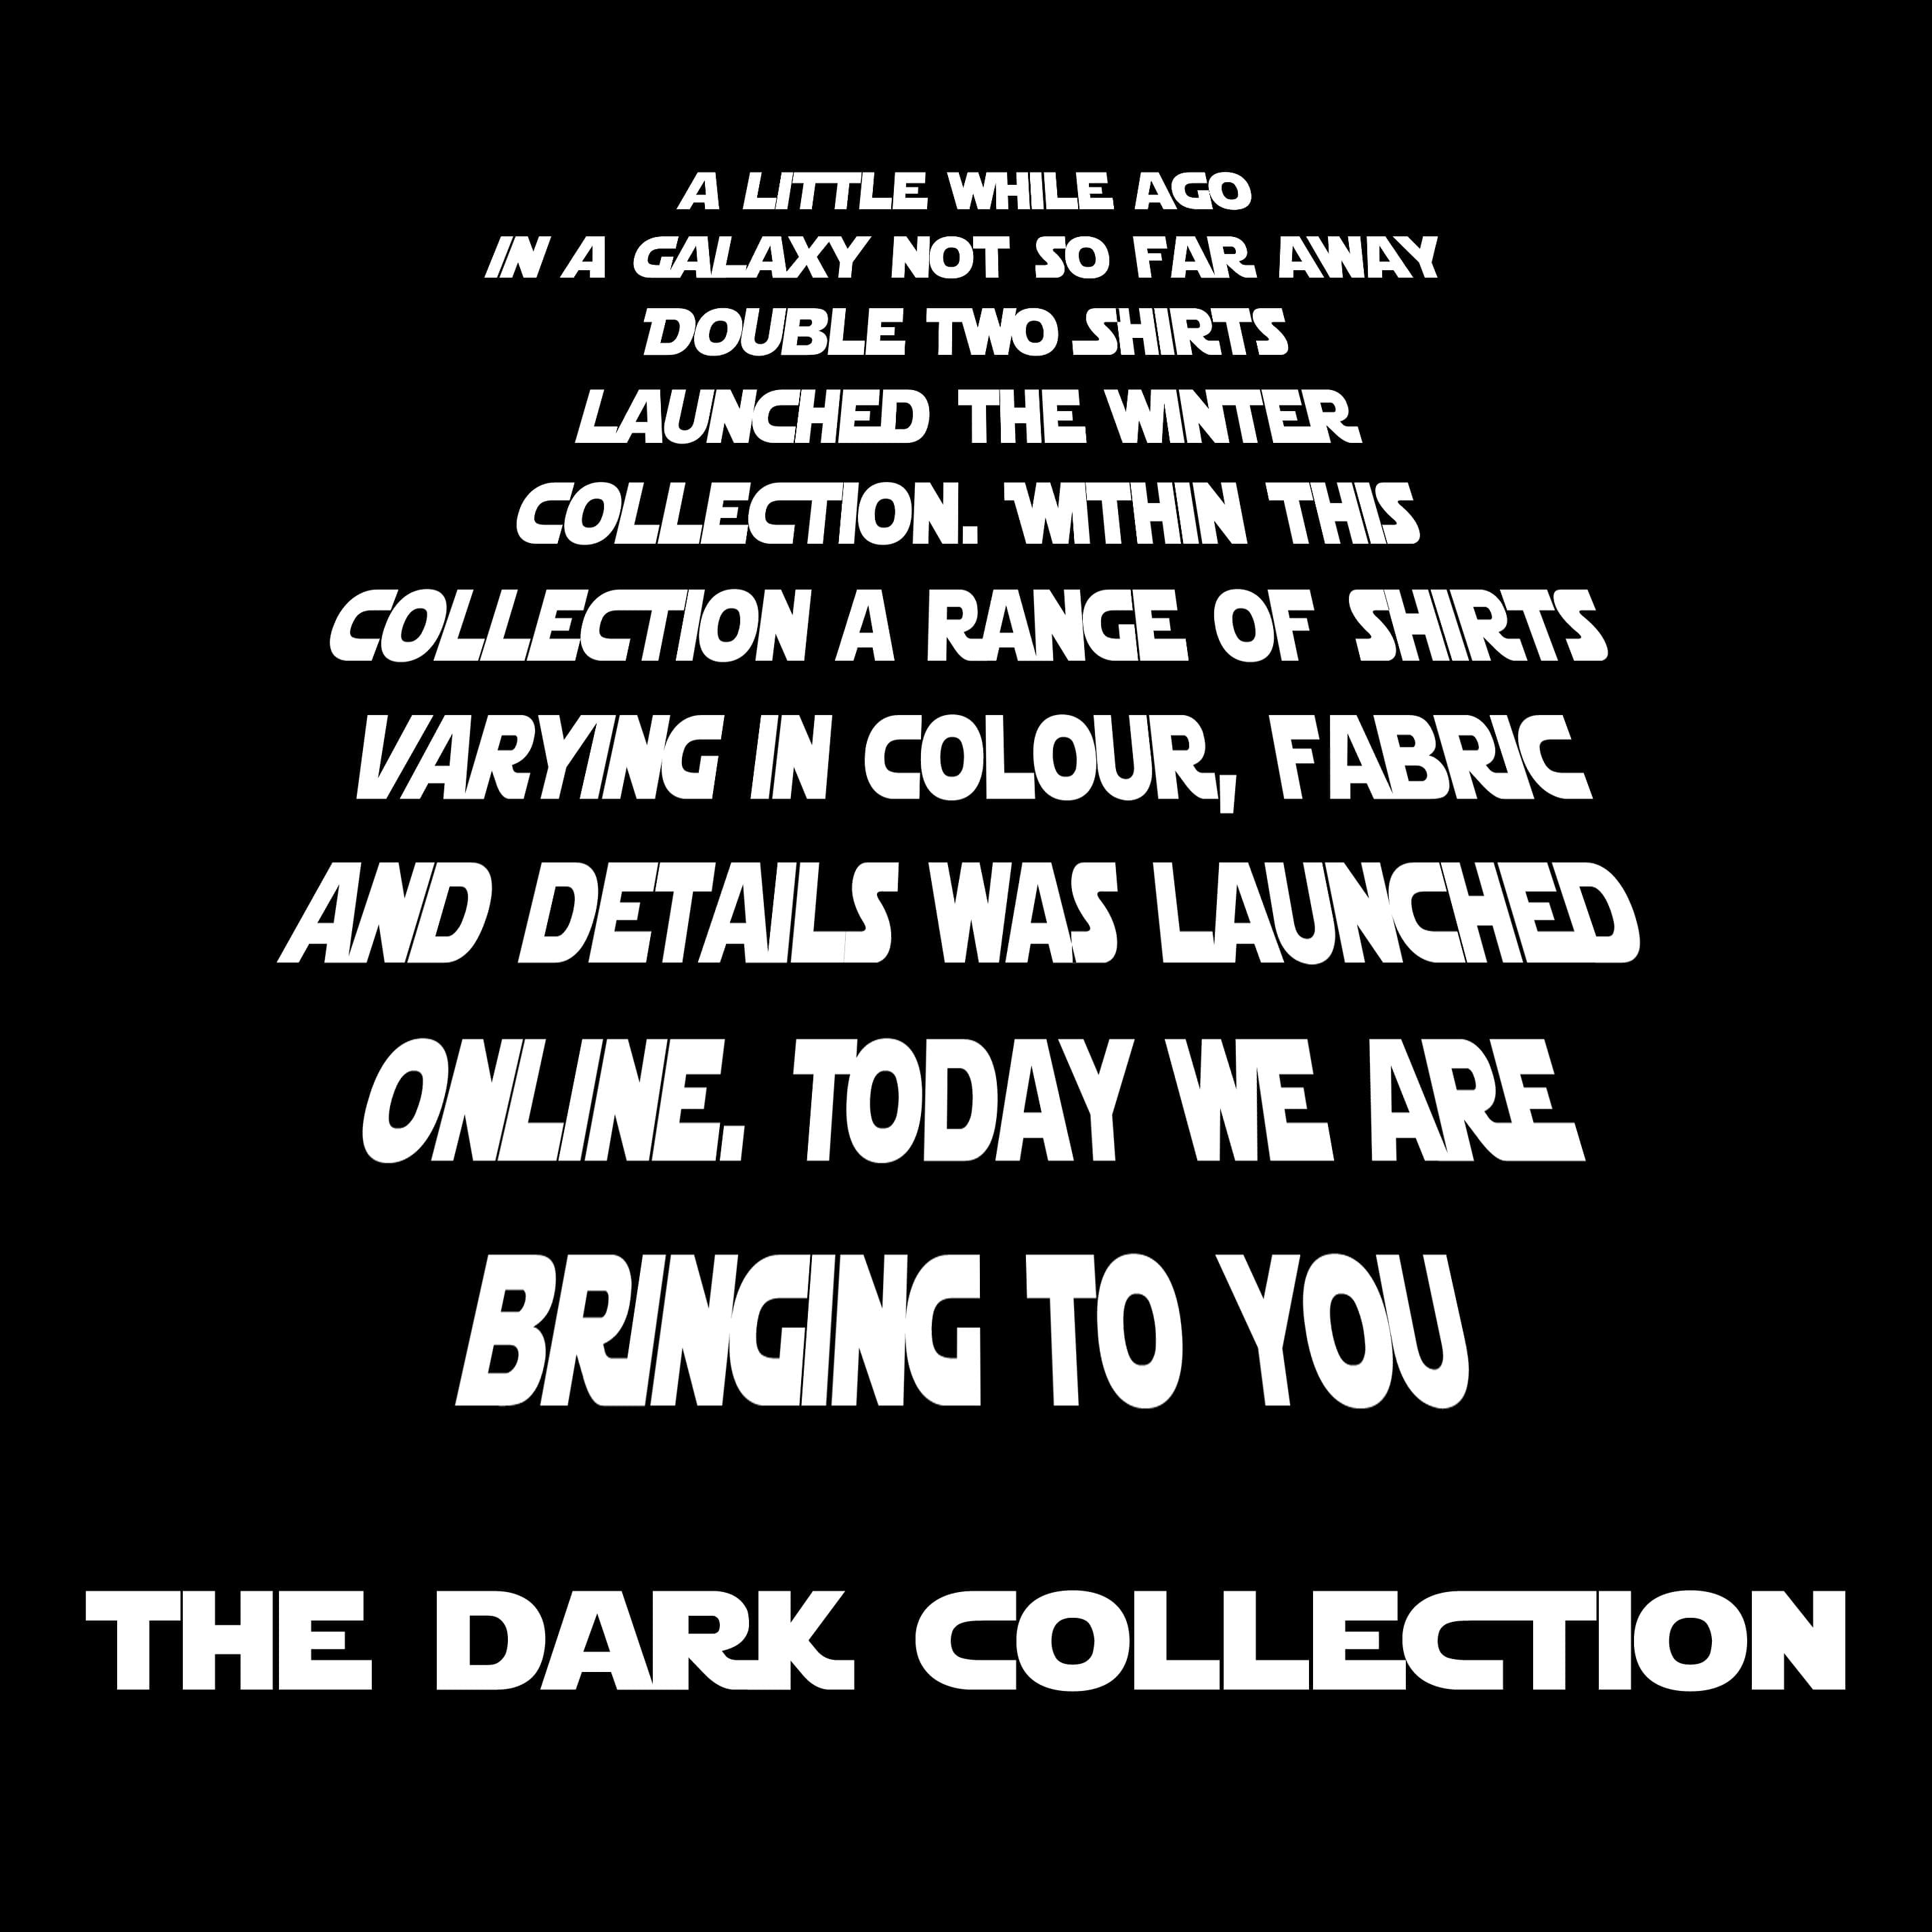 Will you be joining the dark side?